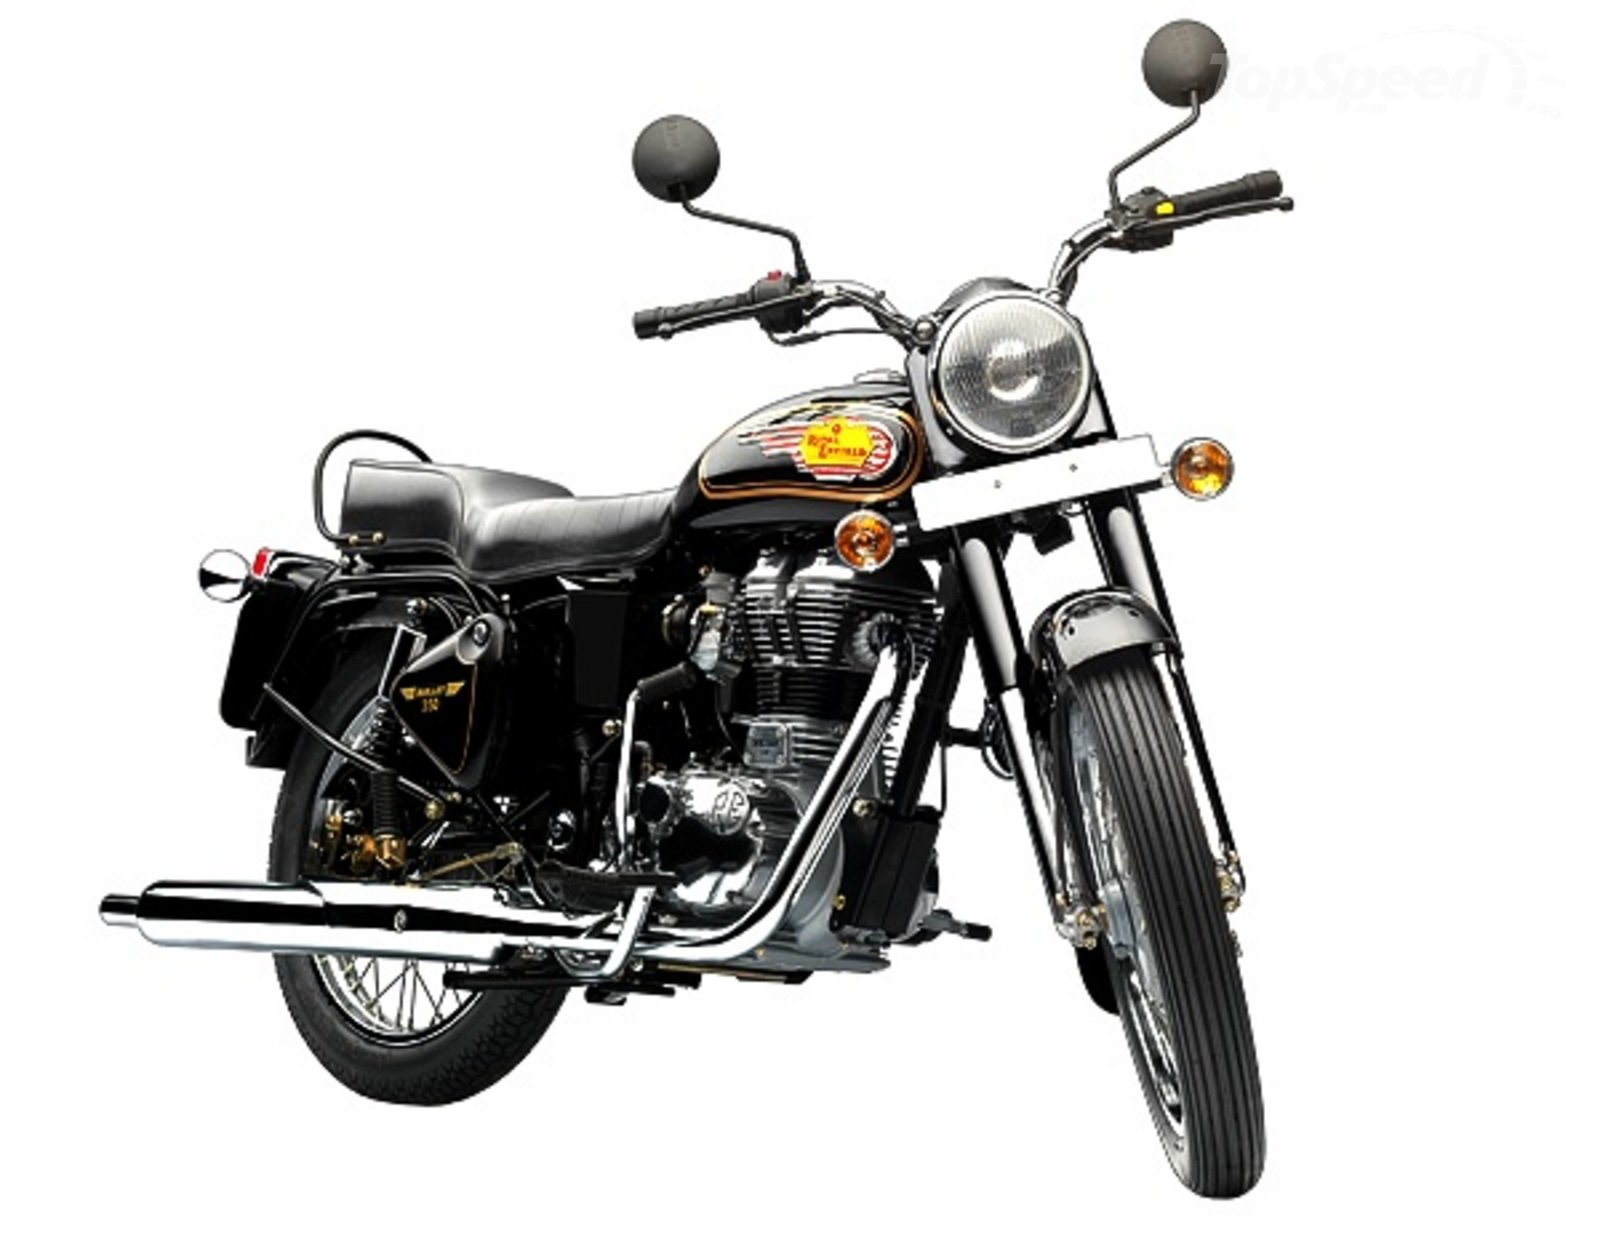 2013 royal enfield bullet 350 twinspark review top speed. Black Bedroom Furniture Sets. Home Design Ideas